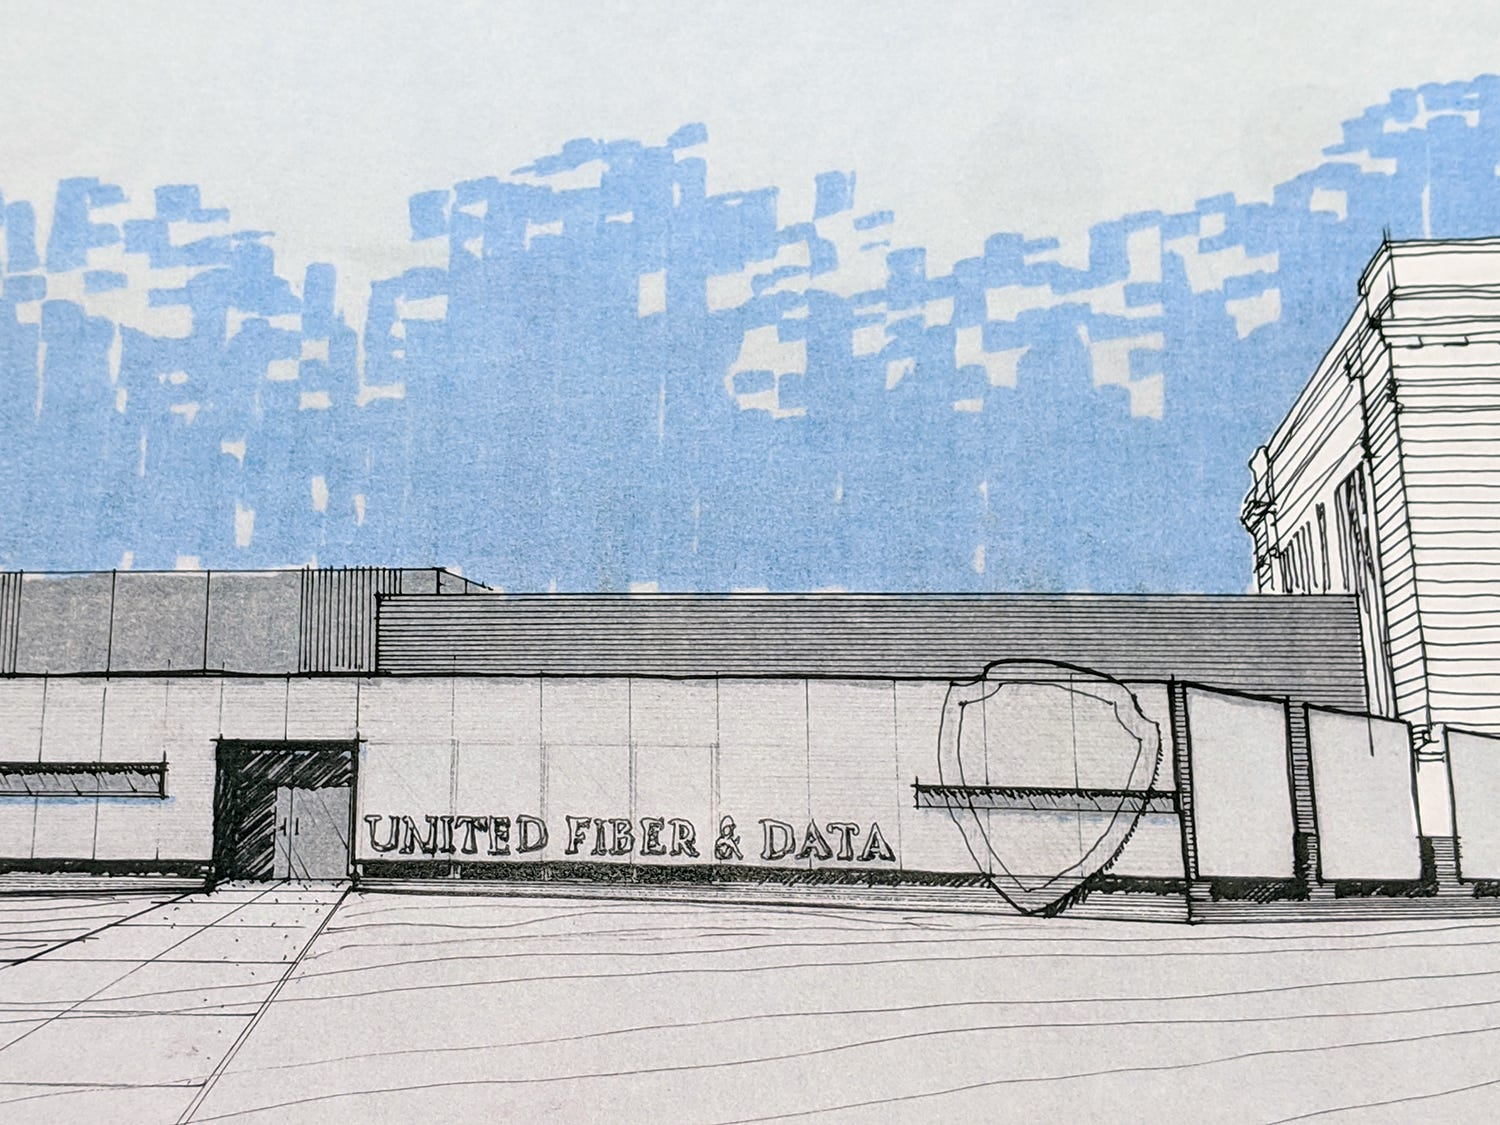 This is an artist's rendering of the new UFD data center that will incorporate the old York County Prison. The renderings are by Warehaus.